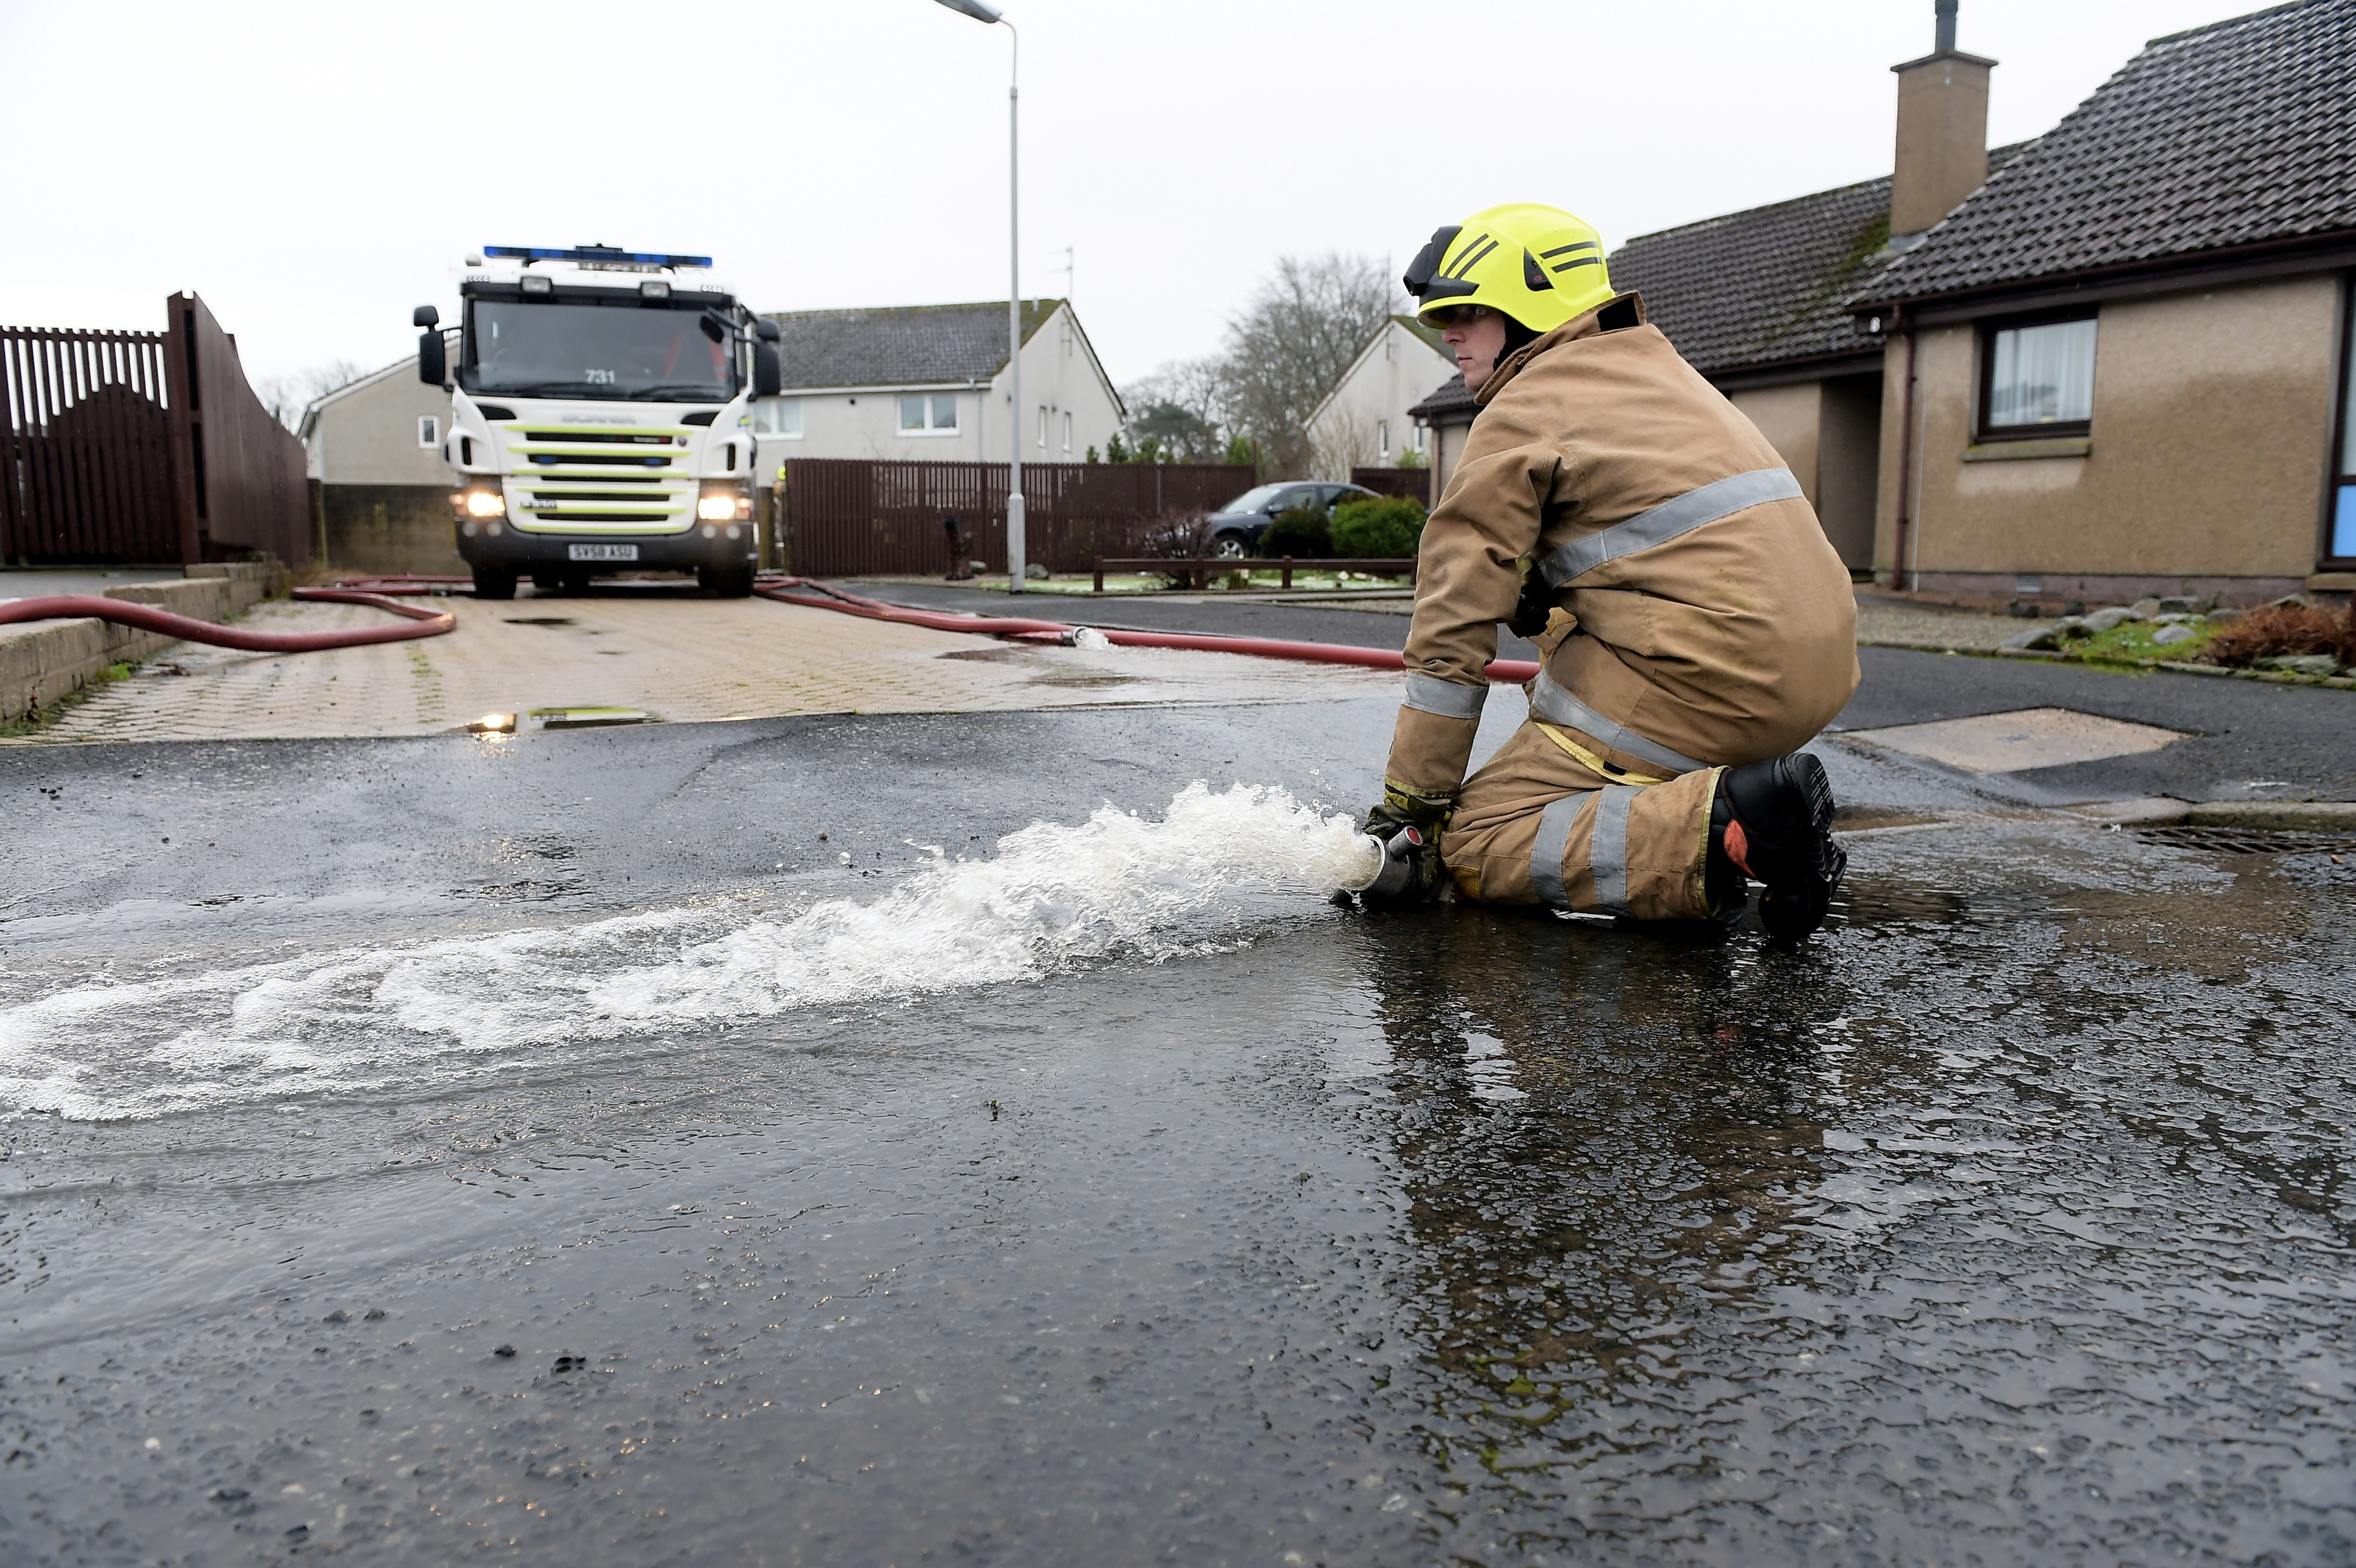 The River Ythan has burst it's banks at Ellon. Scottish Fire and Rescue pump water out of an area with an electric substation at Modley Close, which resulted in no power in the area since the early hours of the morning.